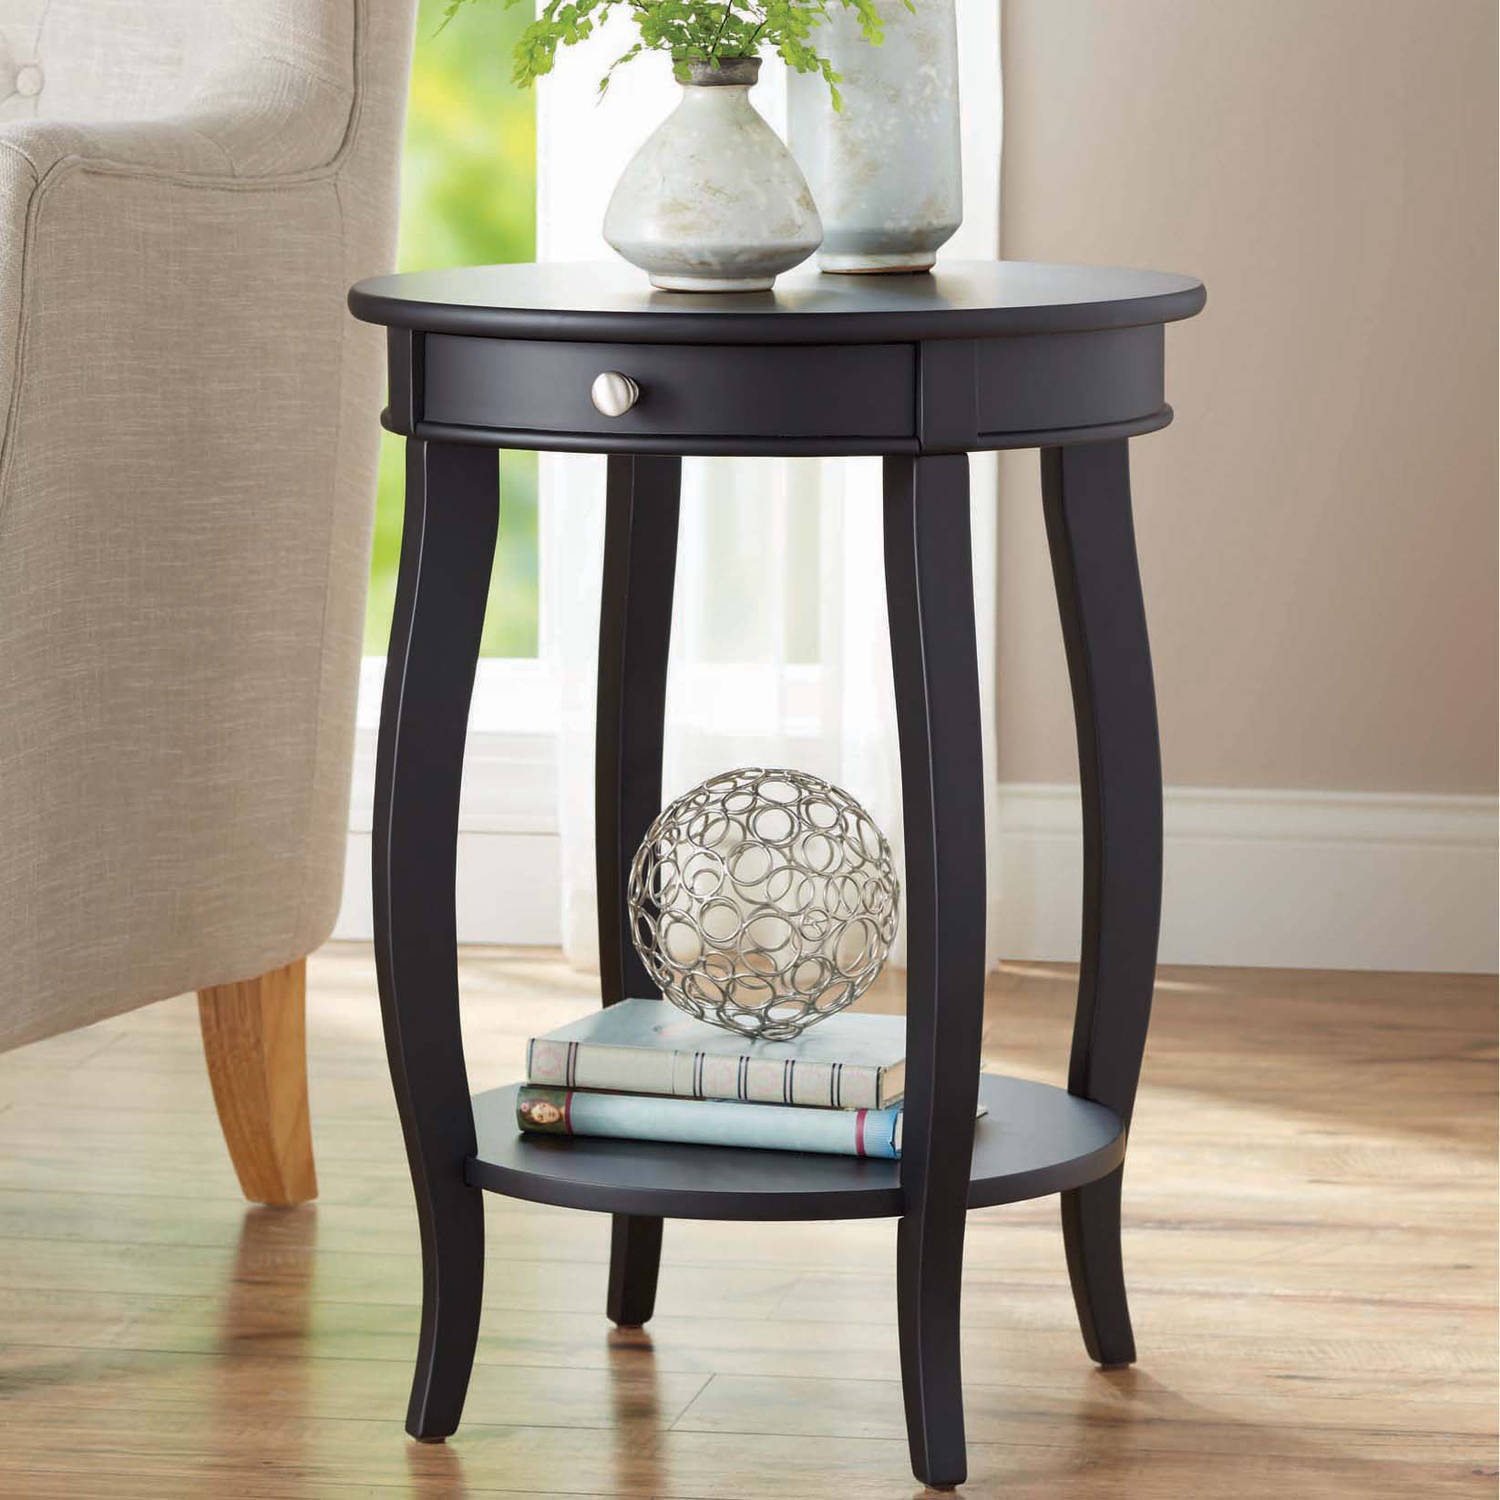 better homes gardens round accent table with drawer multiple black colors oval wood end stool chinese style lamps tablecloth trailer furniture glass side tiffany pond lily lamp